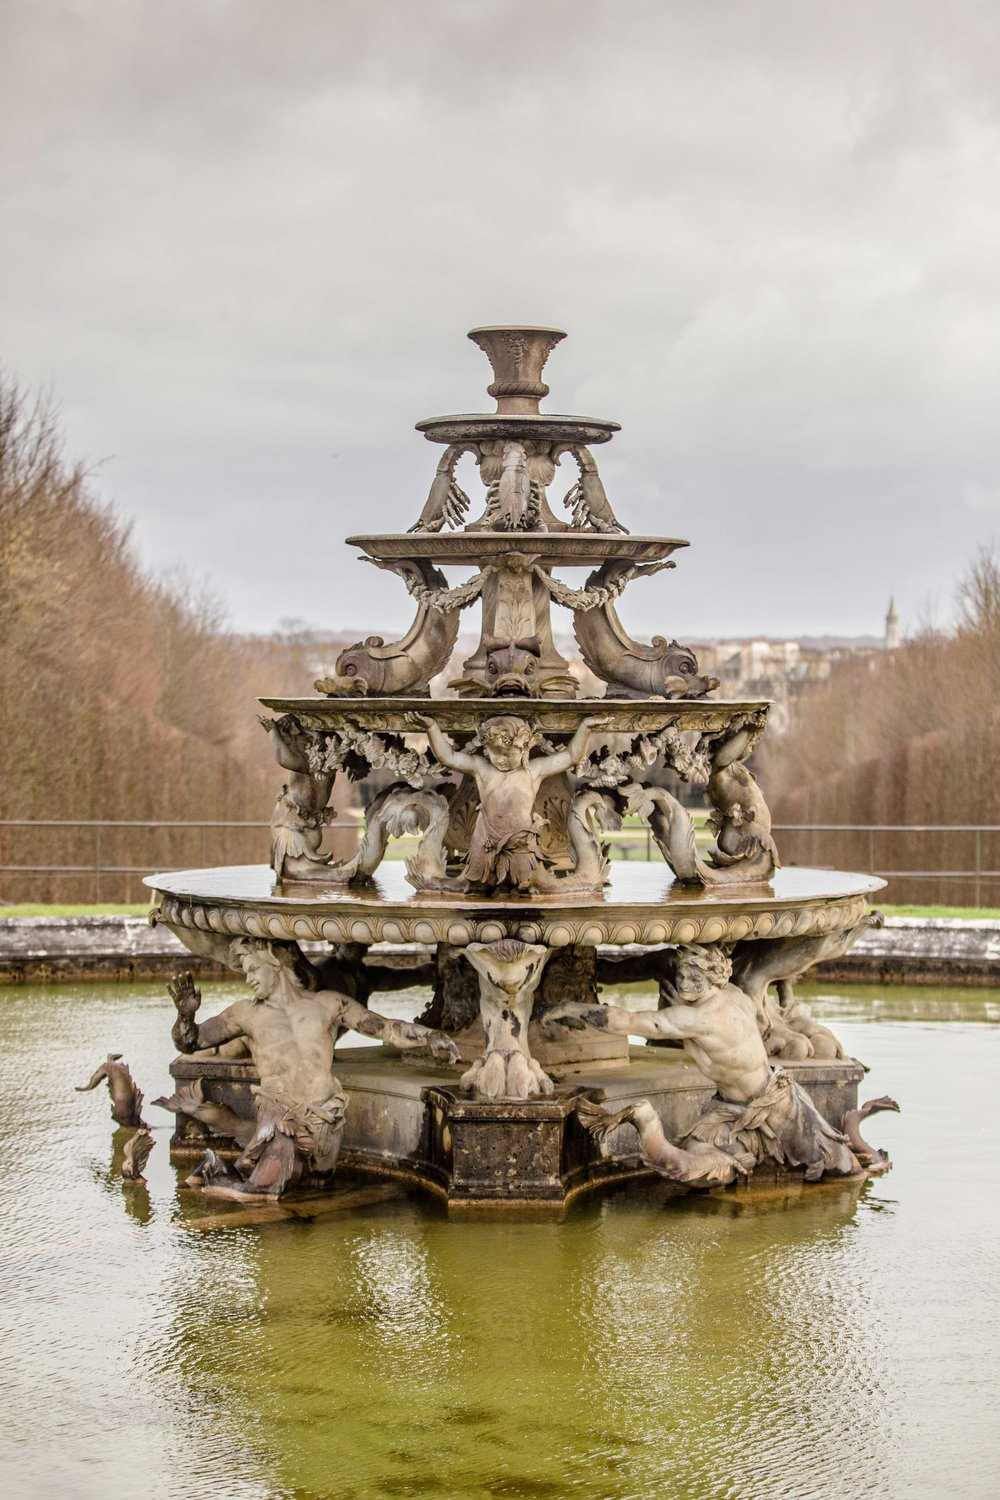 One of the fountains in the gardens of Versailles